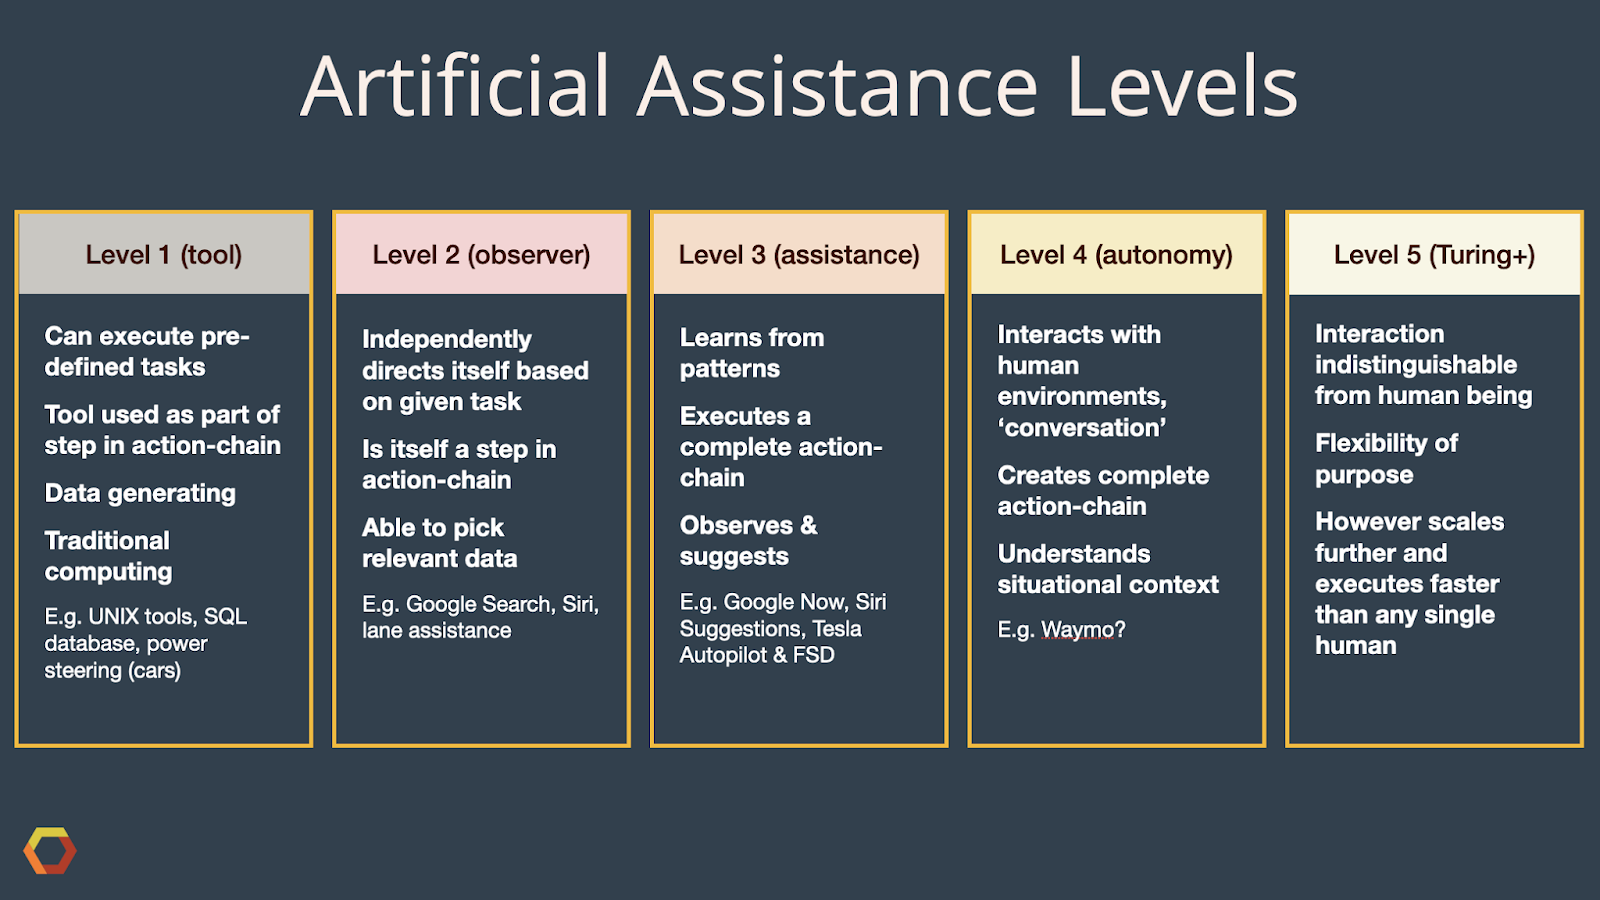 Level 1: Traditional Computing, Pre-defined Tasks. Level 2: Guides Itself, Picks Relevant Data. Level 3: Learns from Patterns, Suggests. Level 4: Interacts in Human Environments. Level 5: Passes Applied Turing Test.